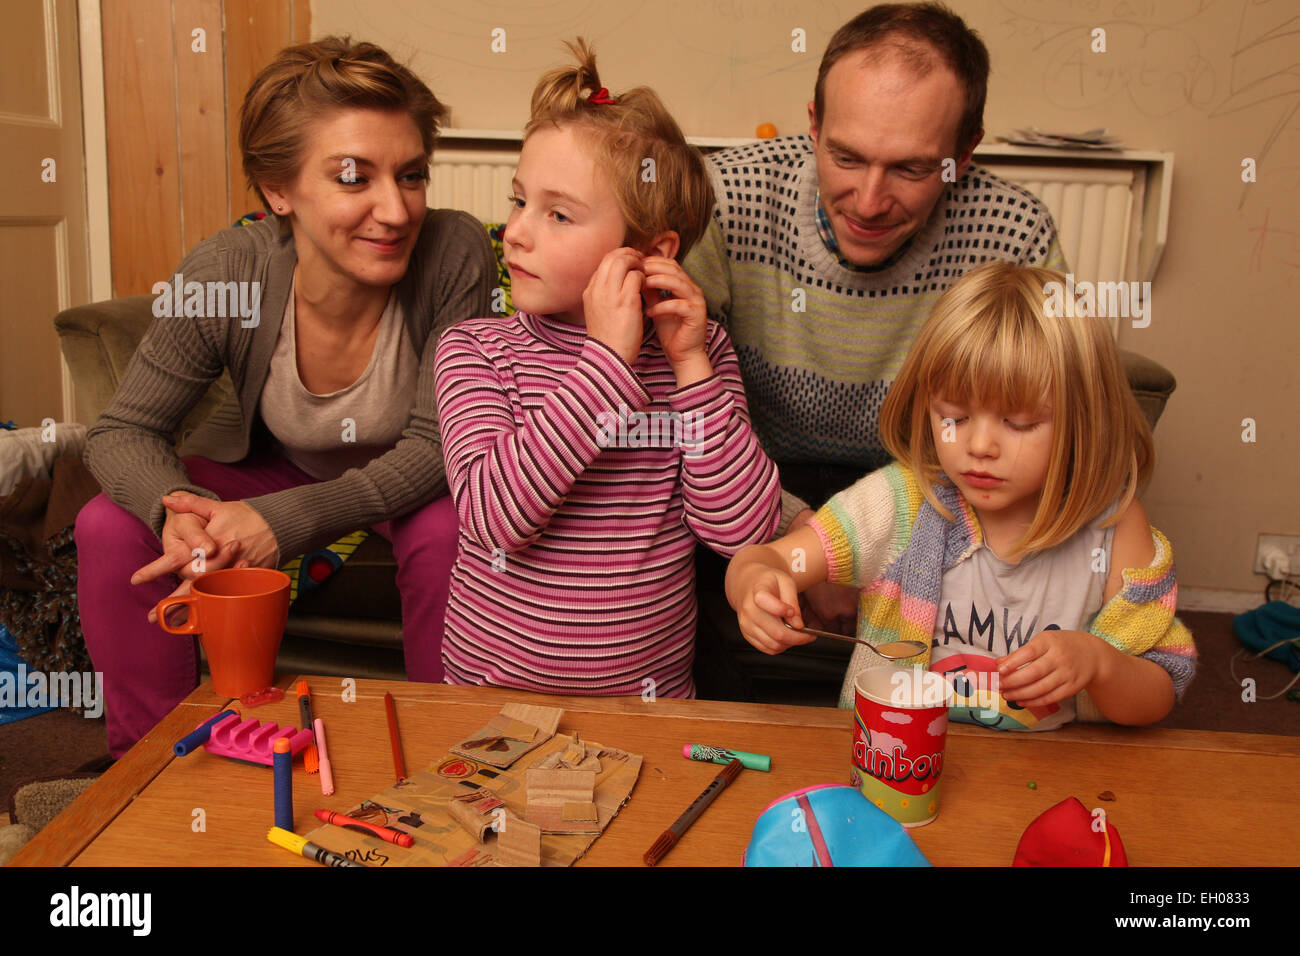 Parents and children crafting - model released - Stock Image